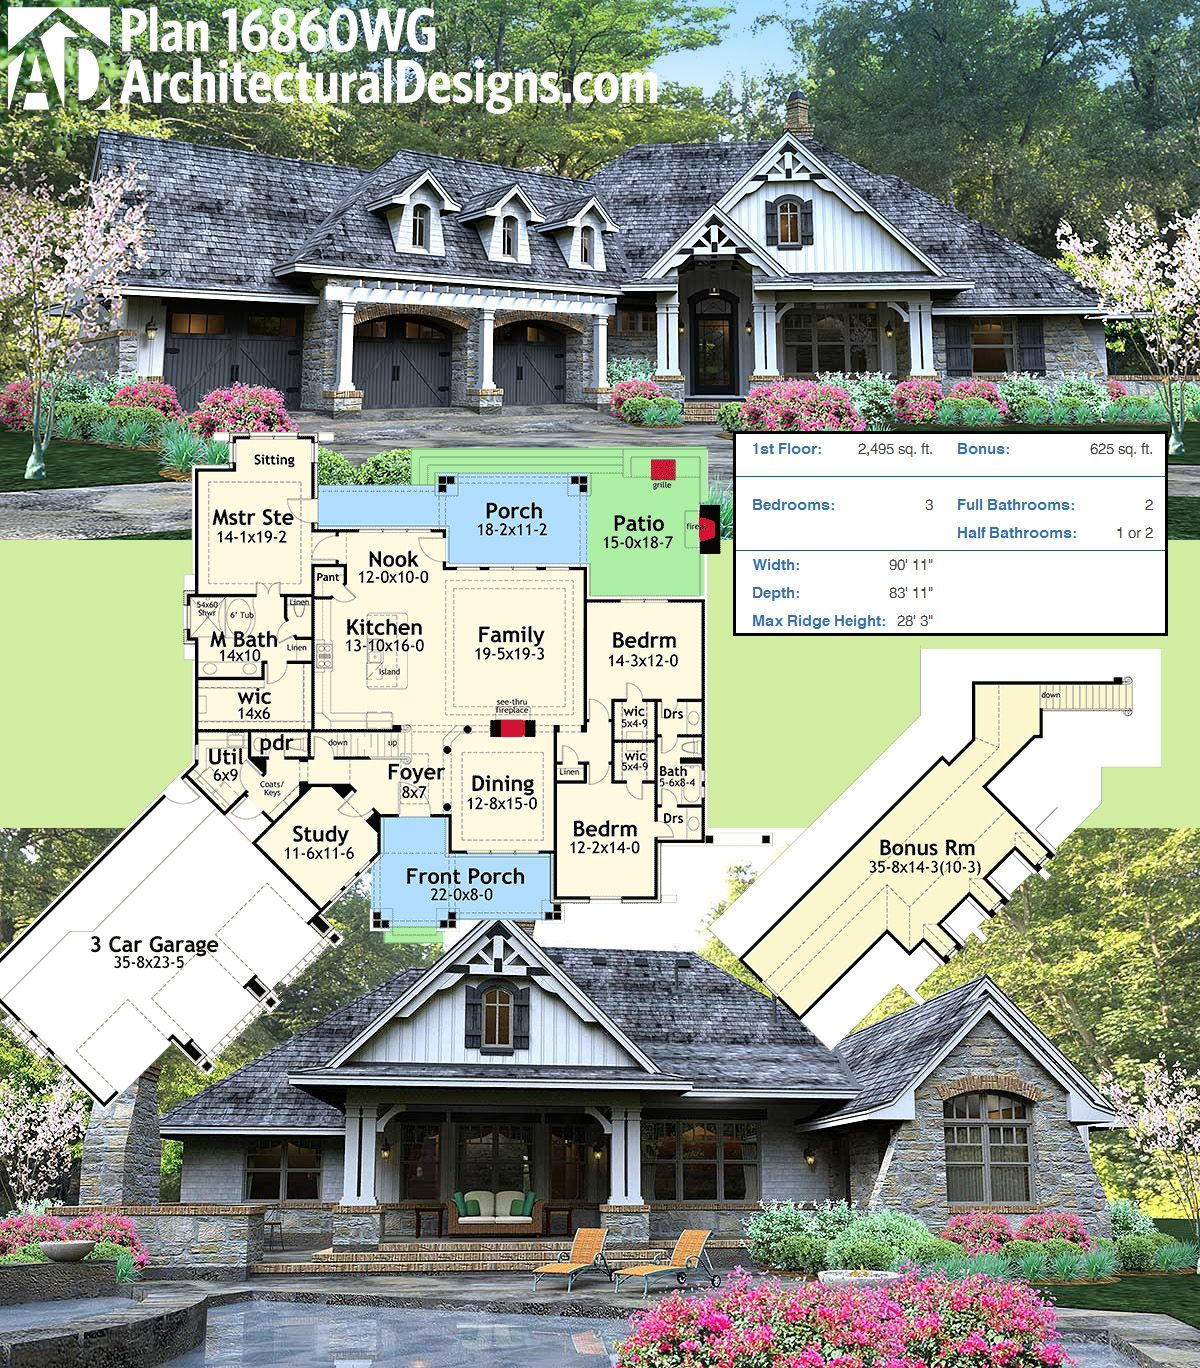 Architectural Designs Rugged Craftsman House Plan 16860WG